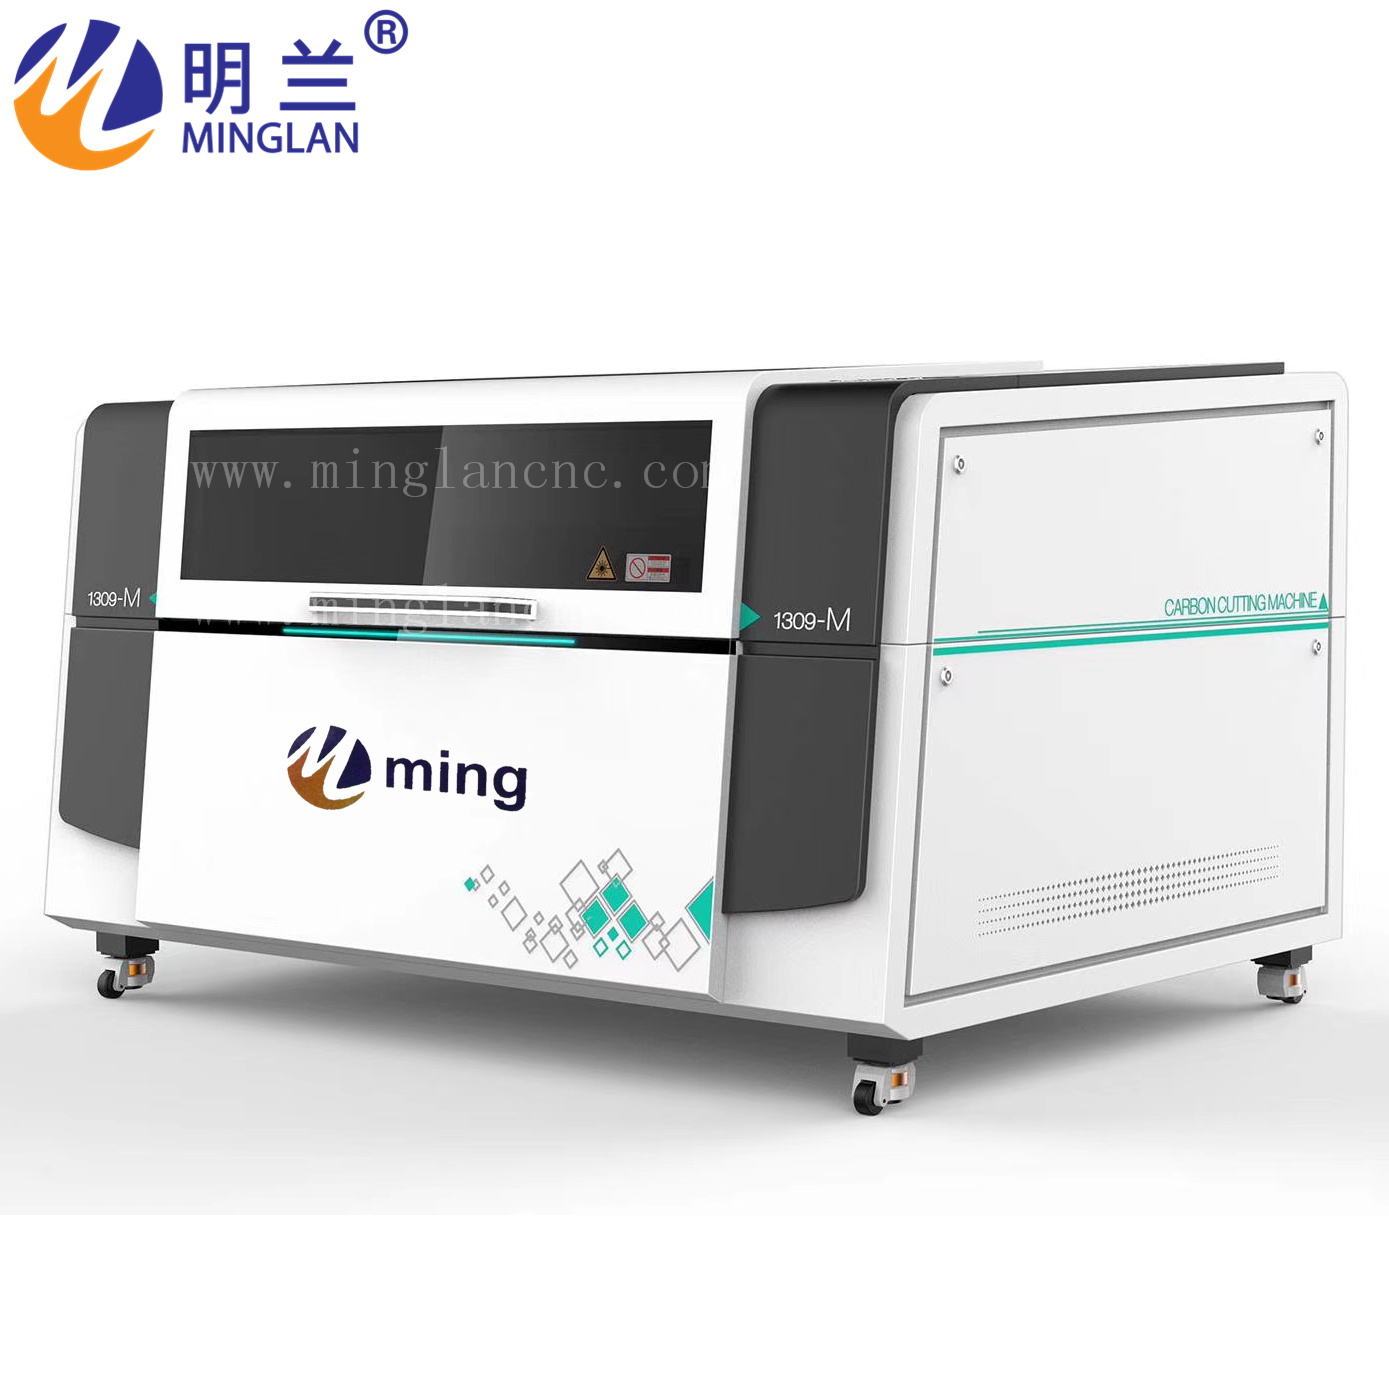 1390 1325 CO2-Laser-Engraving-Cutting Machine With Reci 130W-150W For Non-metal